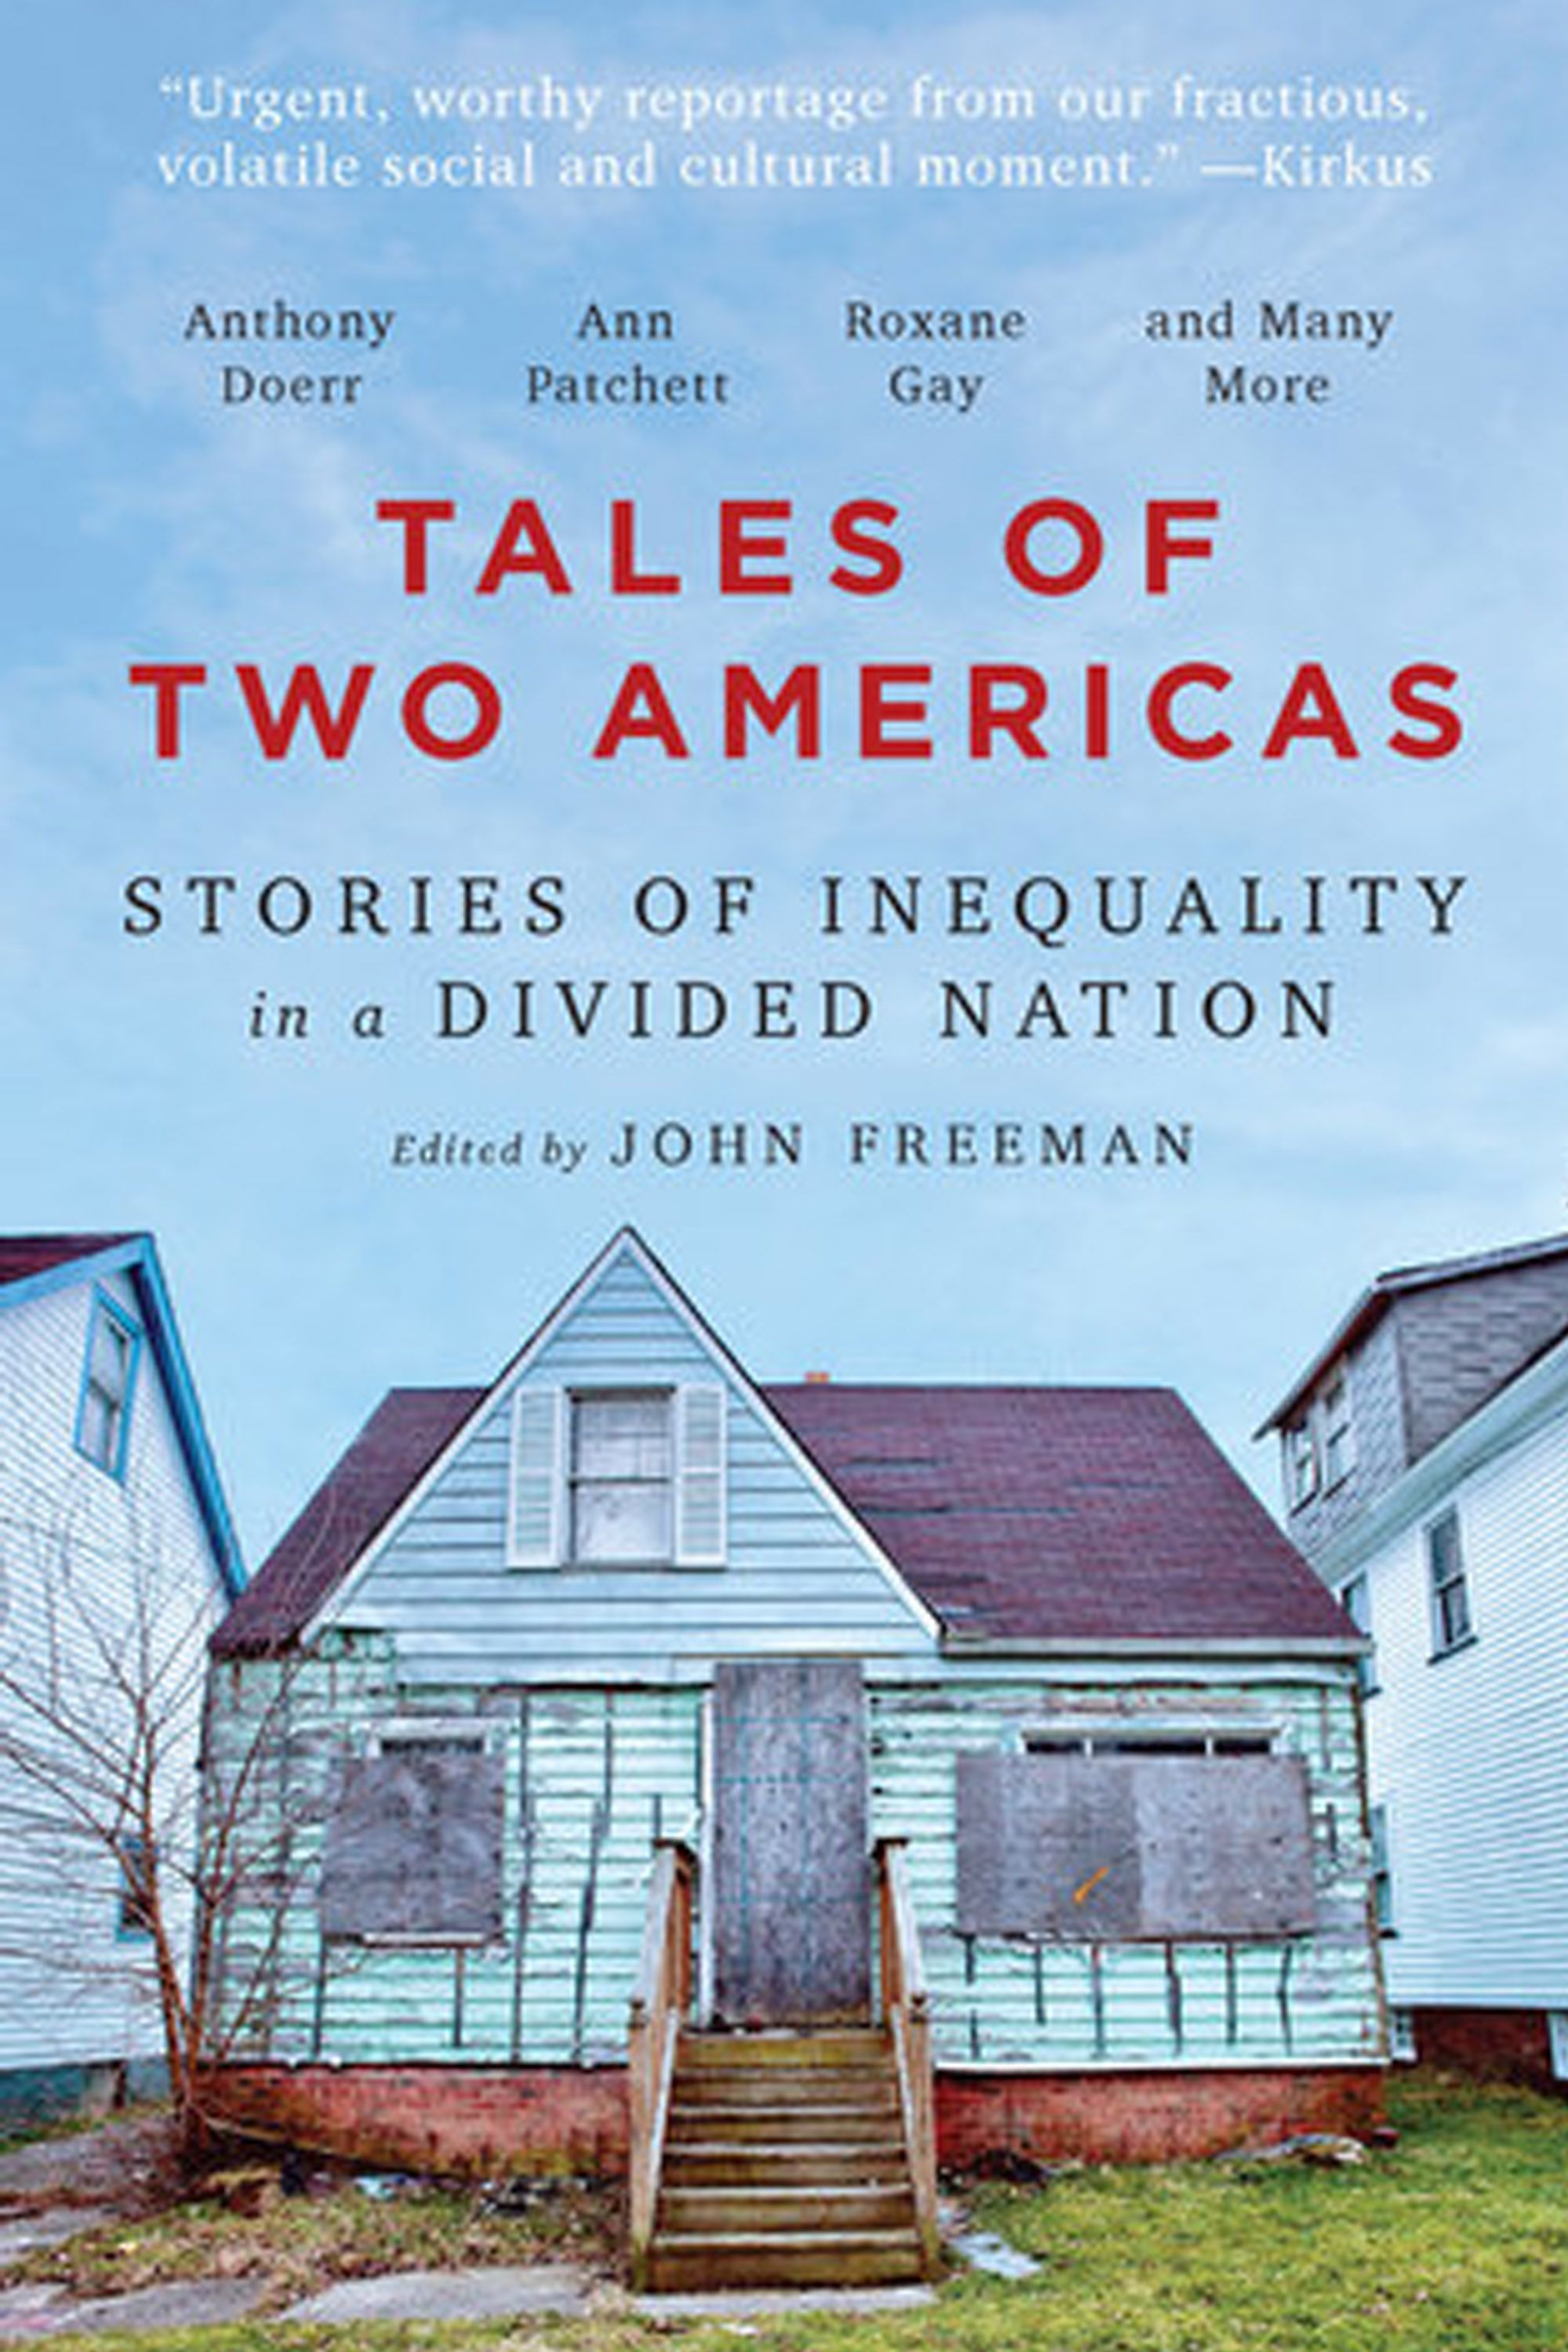 """<p>One of the central lessons of the 2016 election and its aftermath was that America is divided: in its beliefs, in its media, and in its experiences. Writers including <a href=""""http://www.elle.com/culture/a45920/roxane-gay-profile-hunger-memoir/"""" data-tracking-id=""""recirc-text-link"""">Roxane Gay</a>, Edwidge Danticat, Joyce Carol Oates, and moresurvey our troubled times, telling real stories about the America they live in. (<a href=""""https://www.amazon.com/Tales-Two-Americas-Stories-Inequality-ebook/dp/B01NCZ3ITB"""" data-tracking-id=""""recirc-text-link"""">September 5, Penguin Books</a>)</p>"""